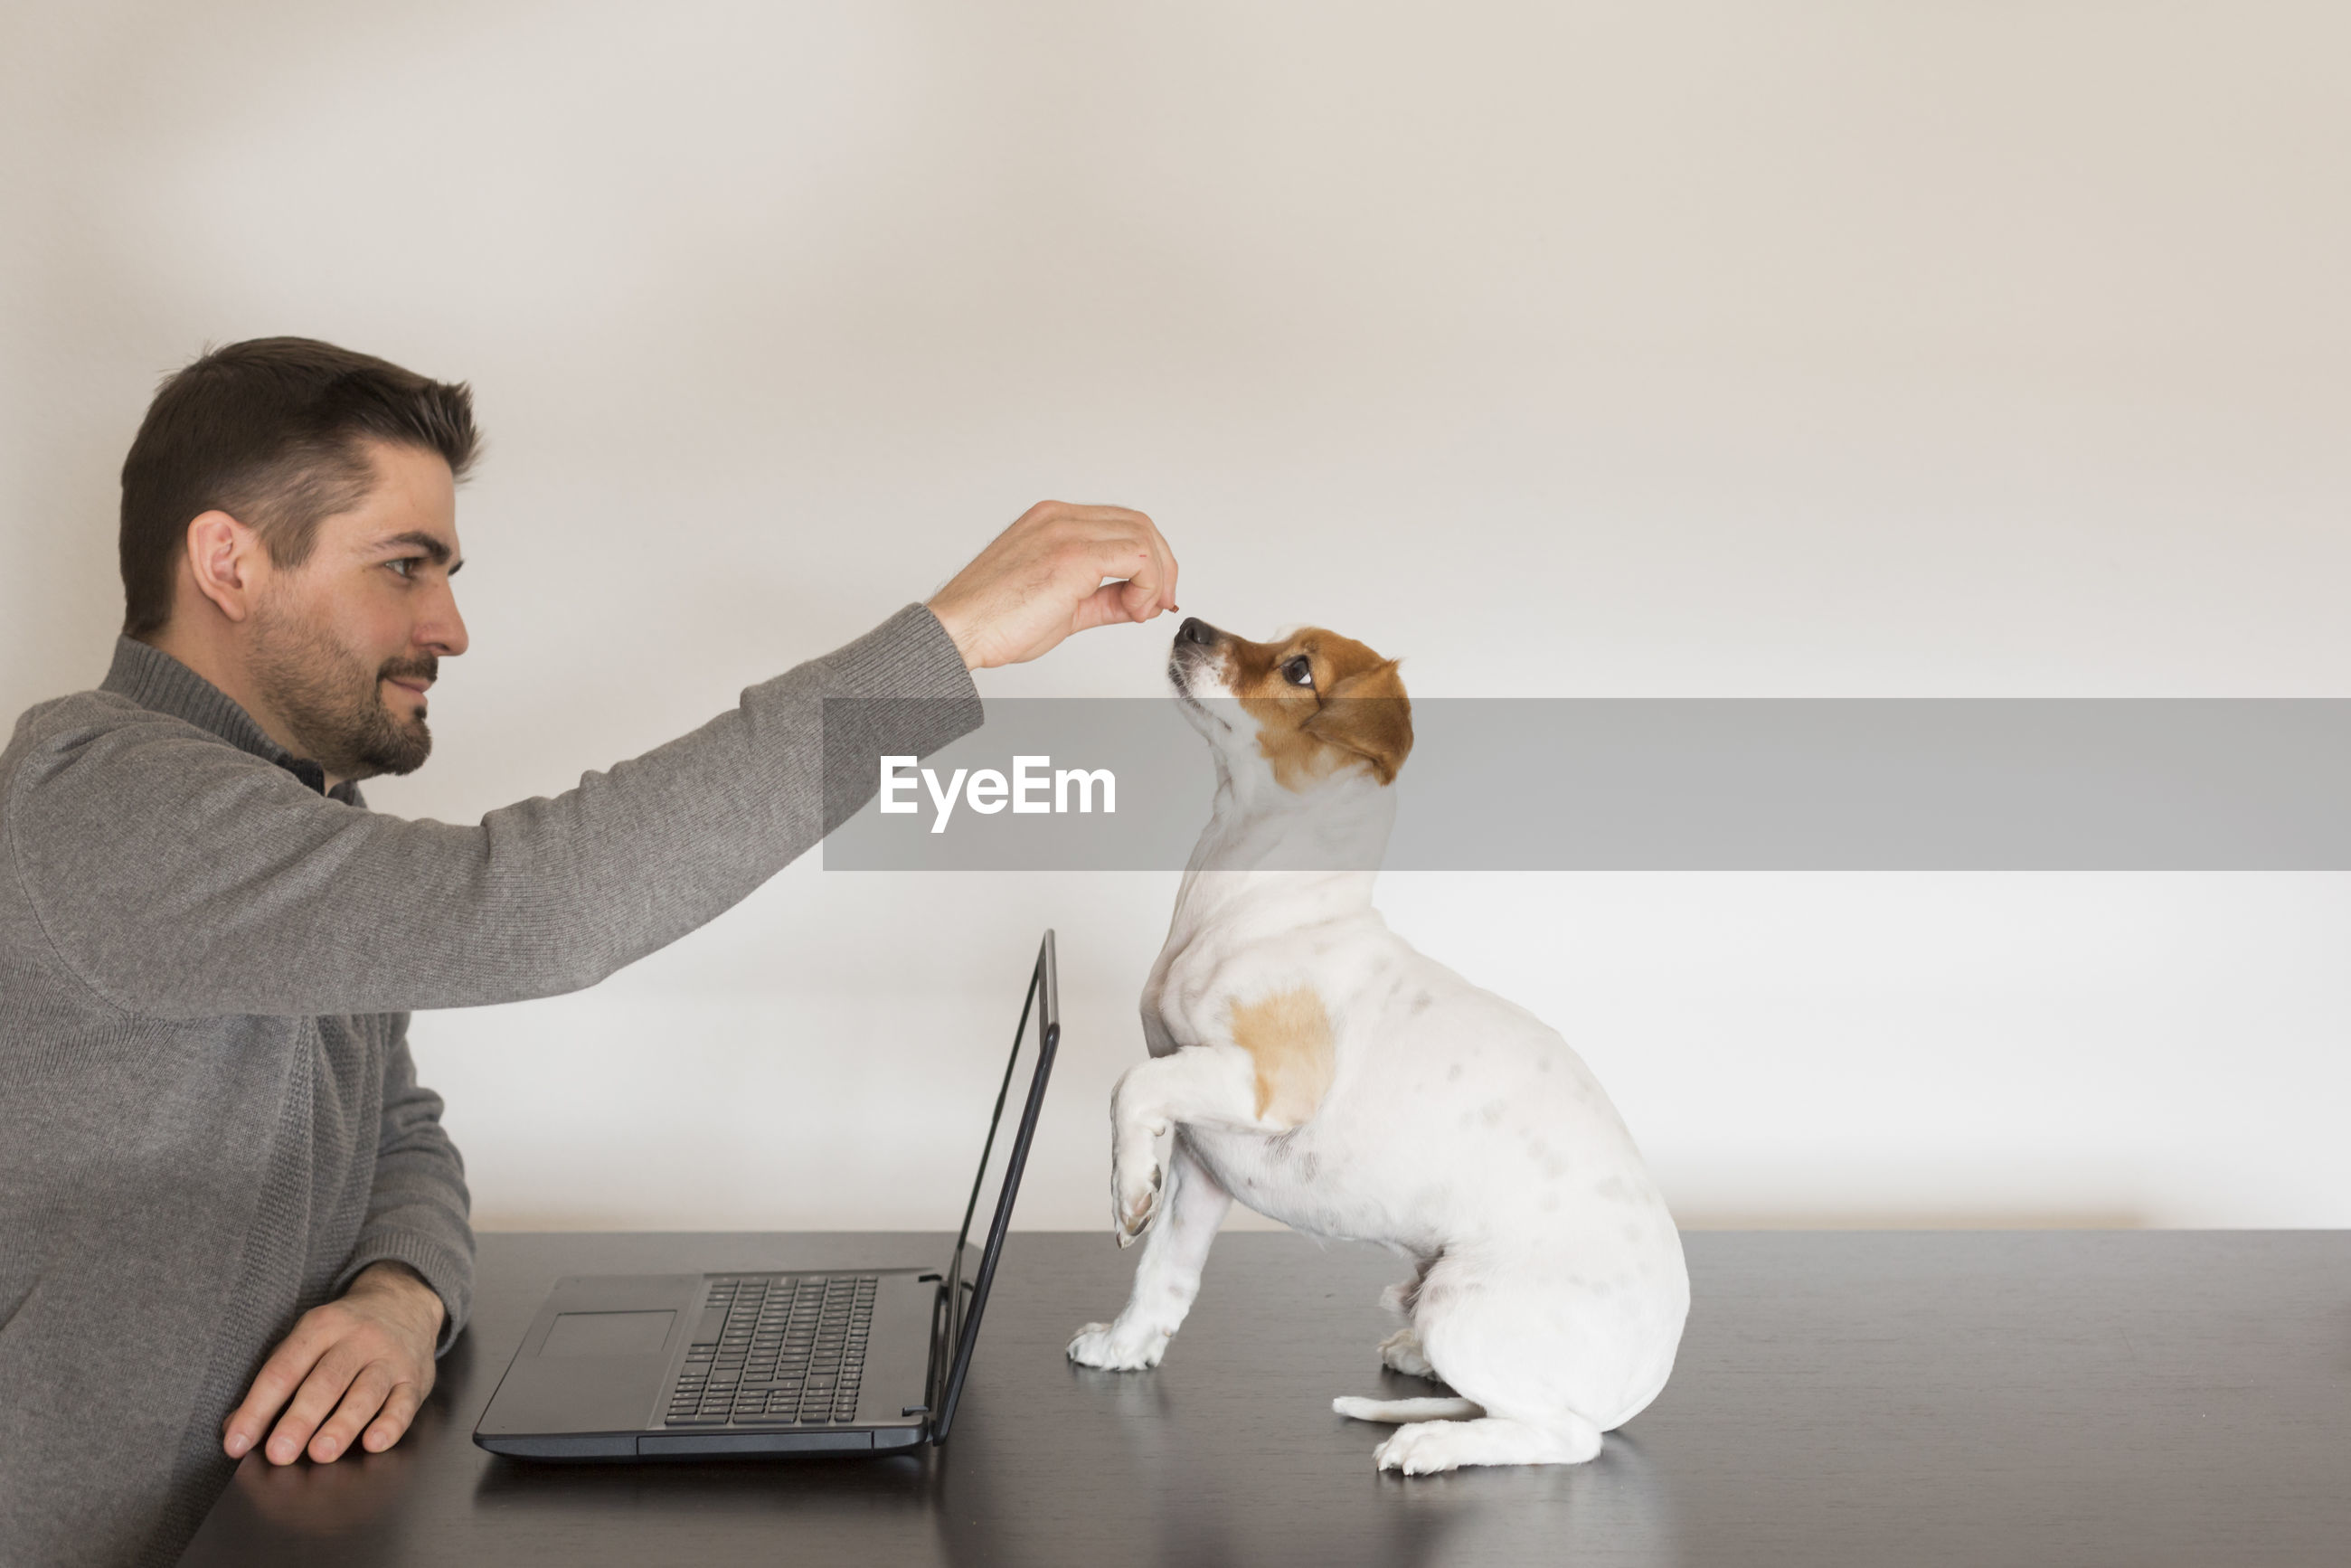 Man with dog on table against wall